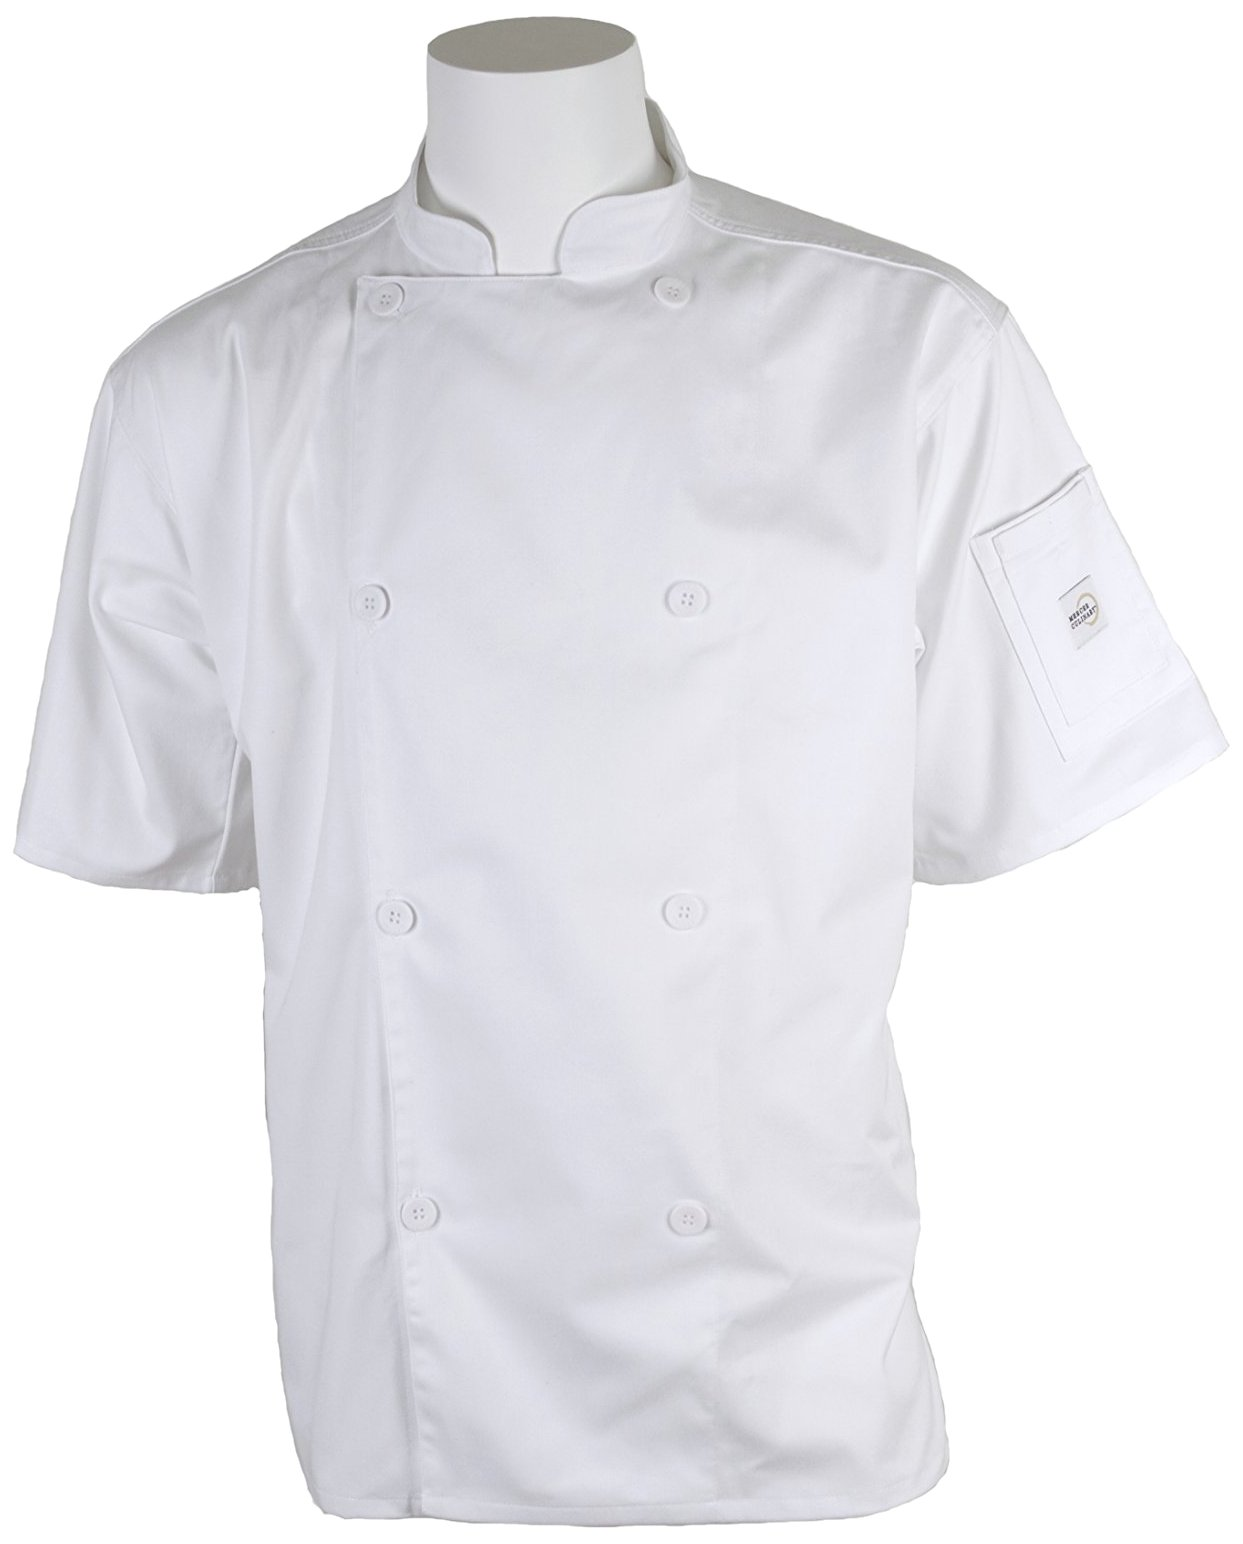 Mercer Culinary M61012WH1X Genesis Men's Short Sleeve Chef Jacket with Traditional Buttons, X-Large, White by Mercer Culinary